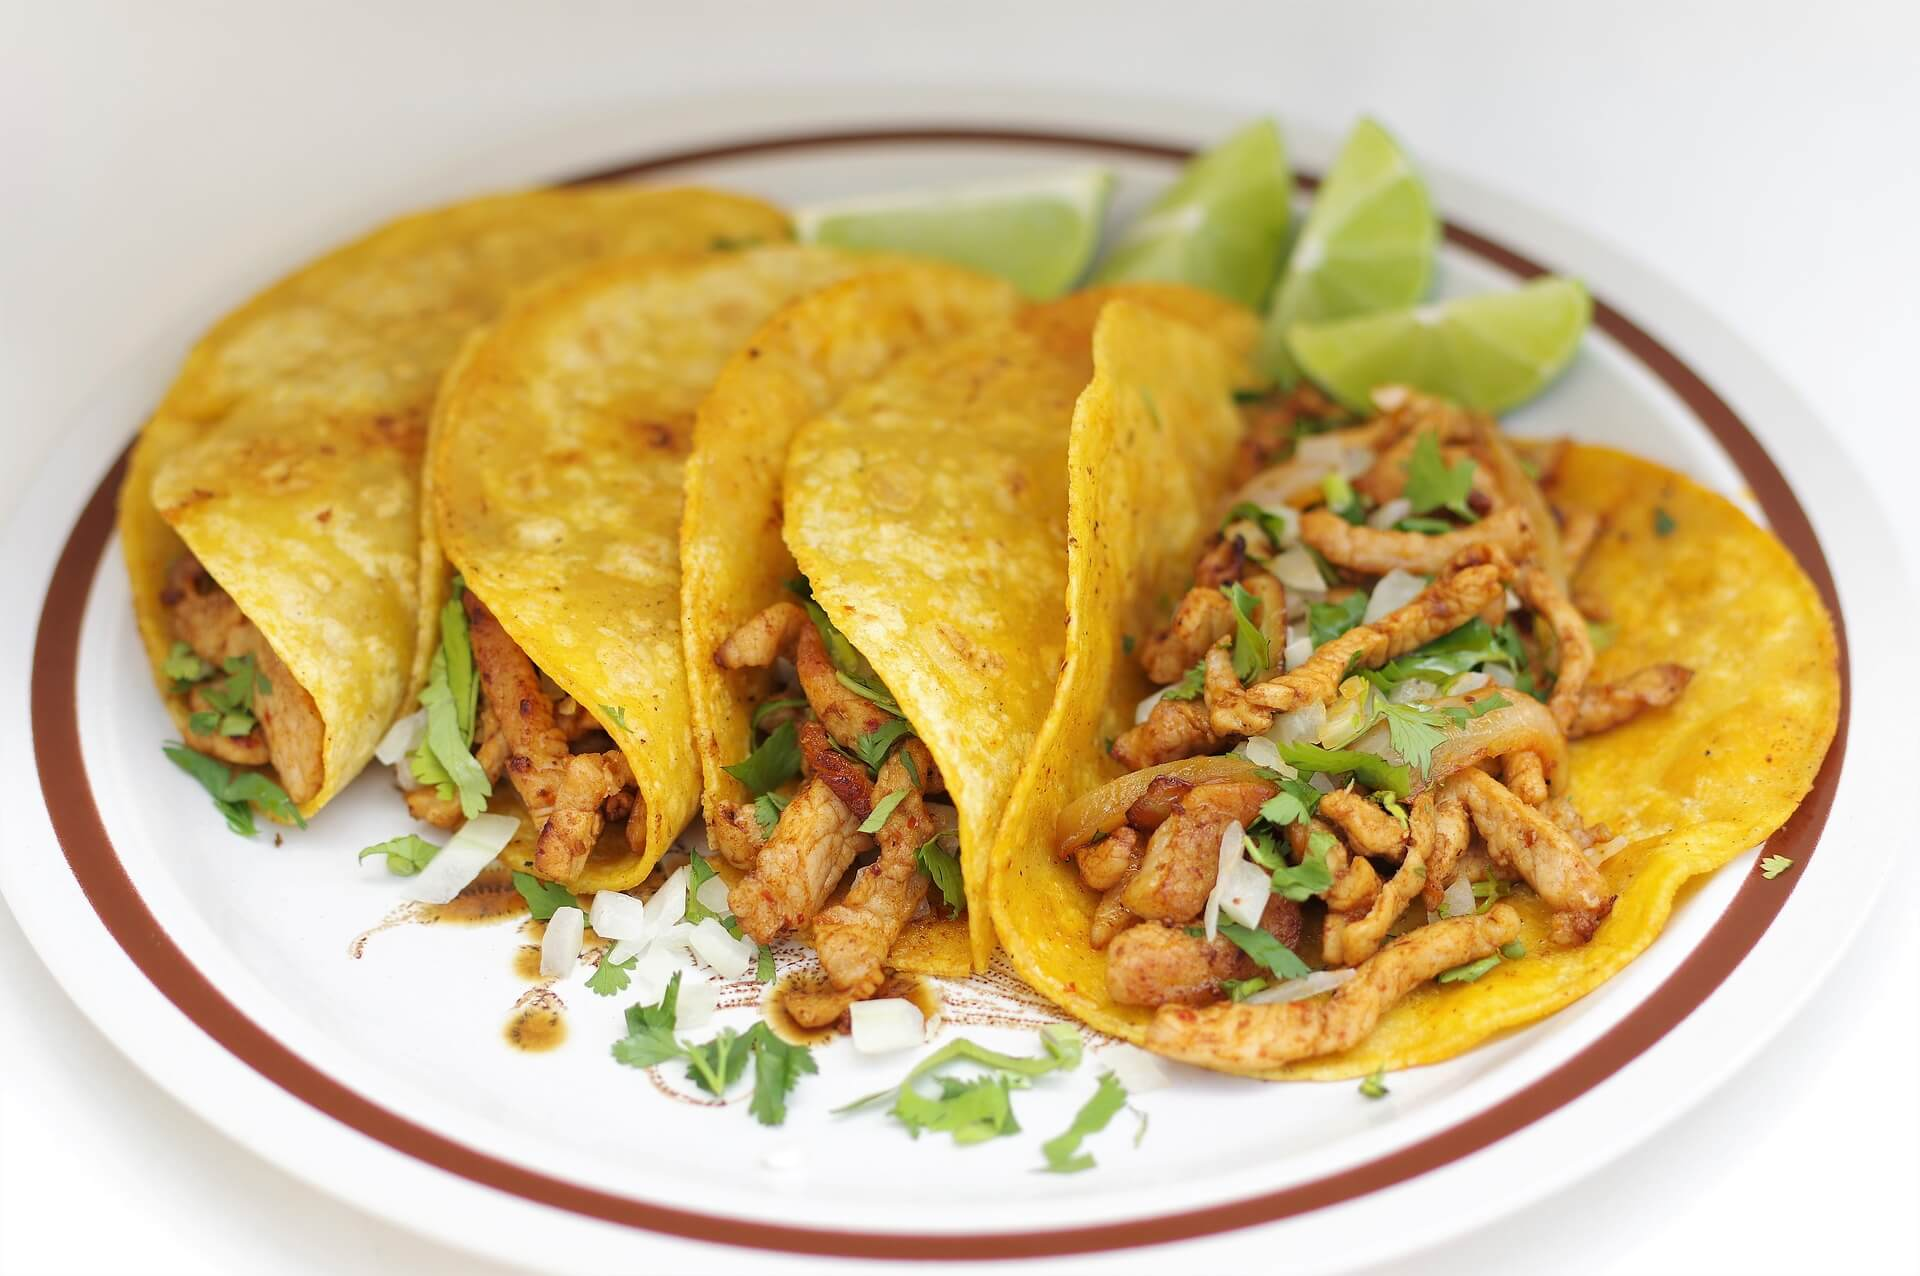 Photo by hayme100 on Pixabay. Chicken street tacos.